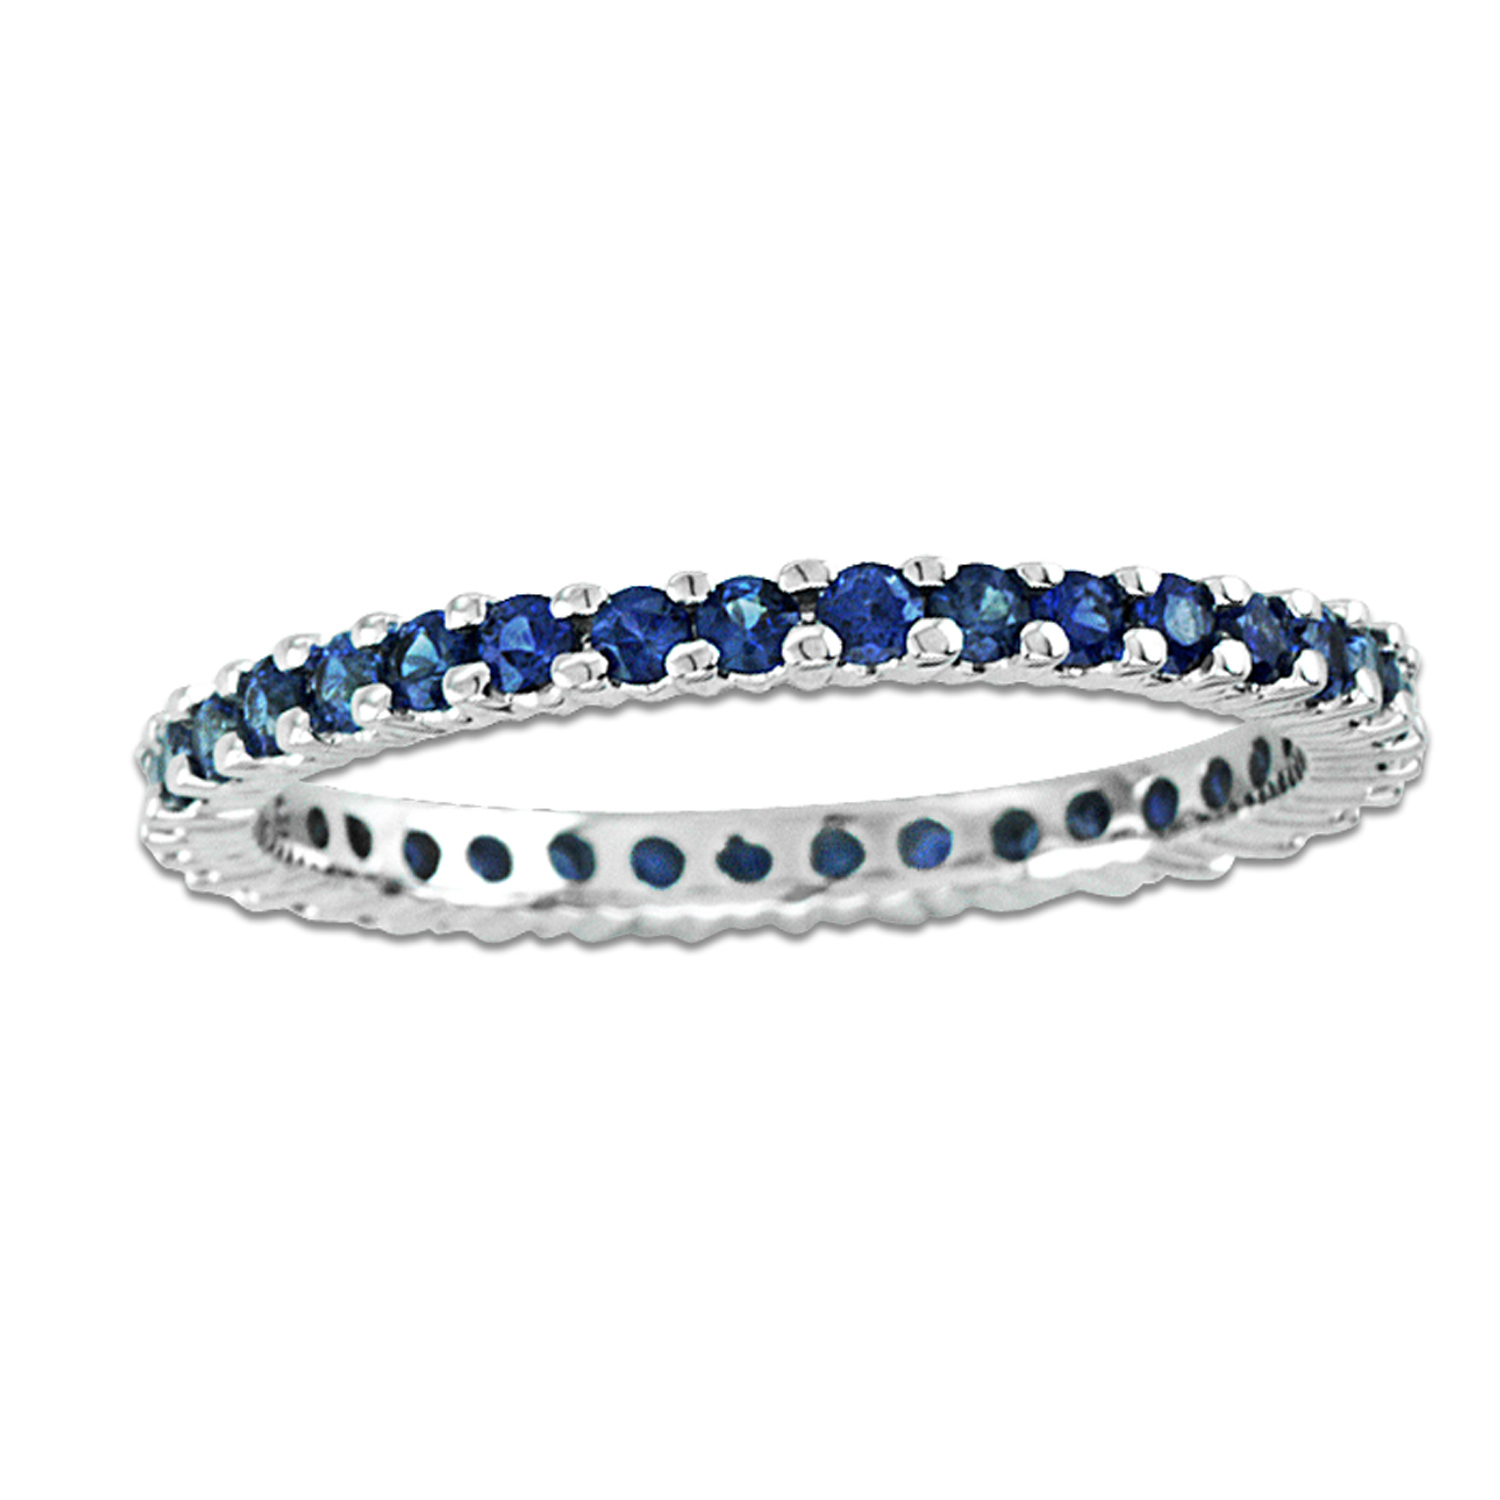 View 14k Gold Sapphire all Around Eternity Ring with 0.80ct tw of Sapphire